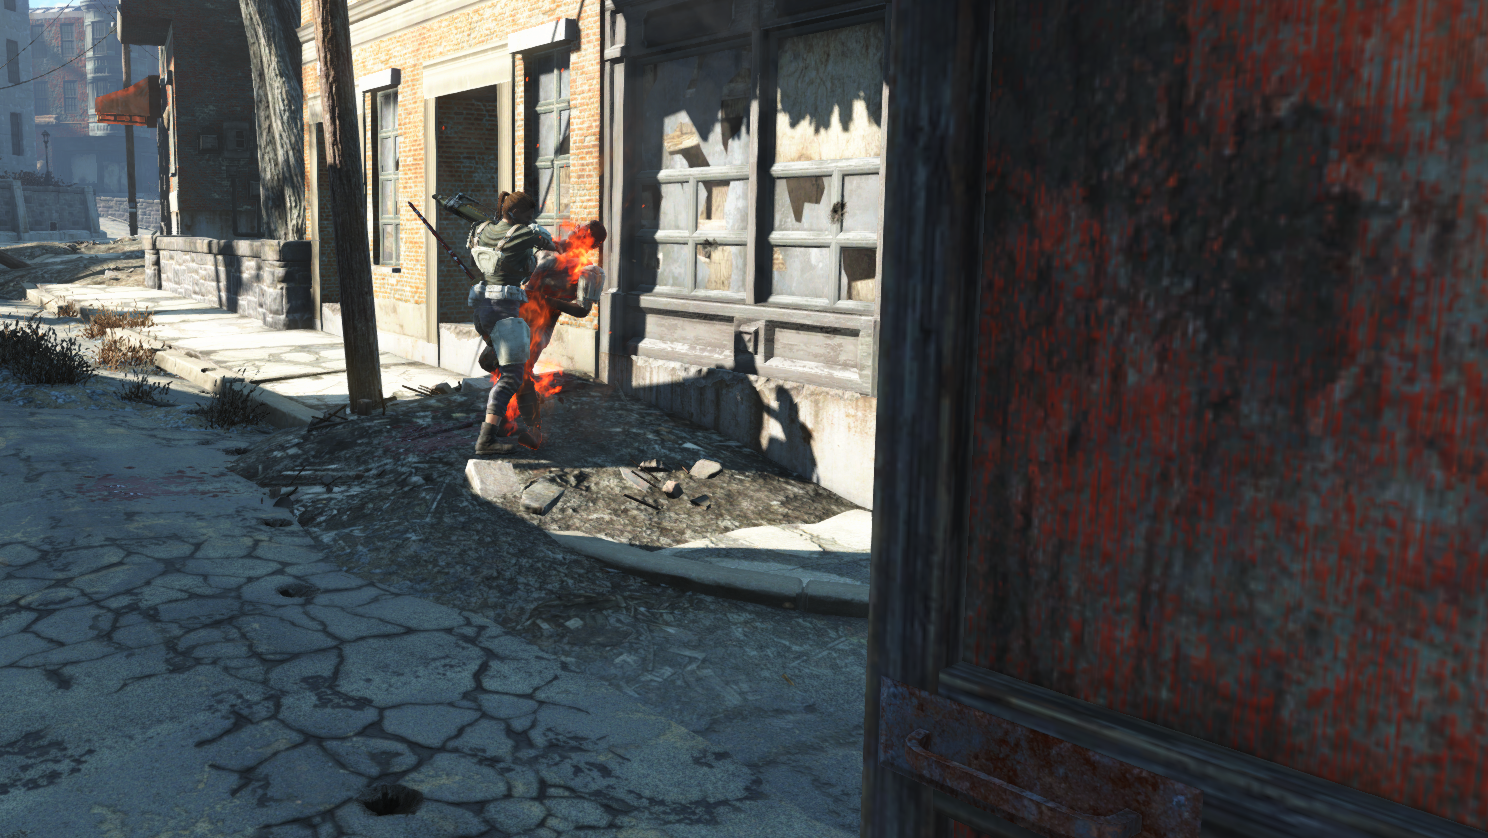 Raider knocked down by the loneprovisioner